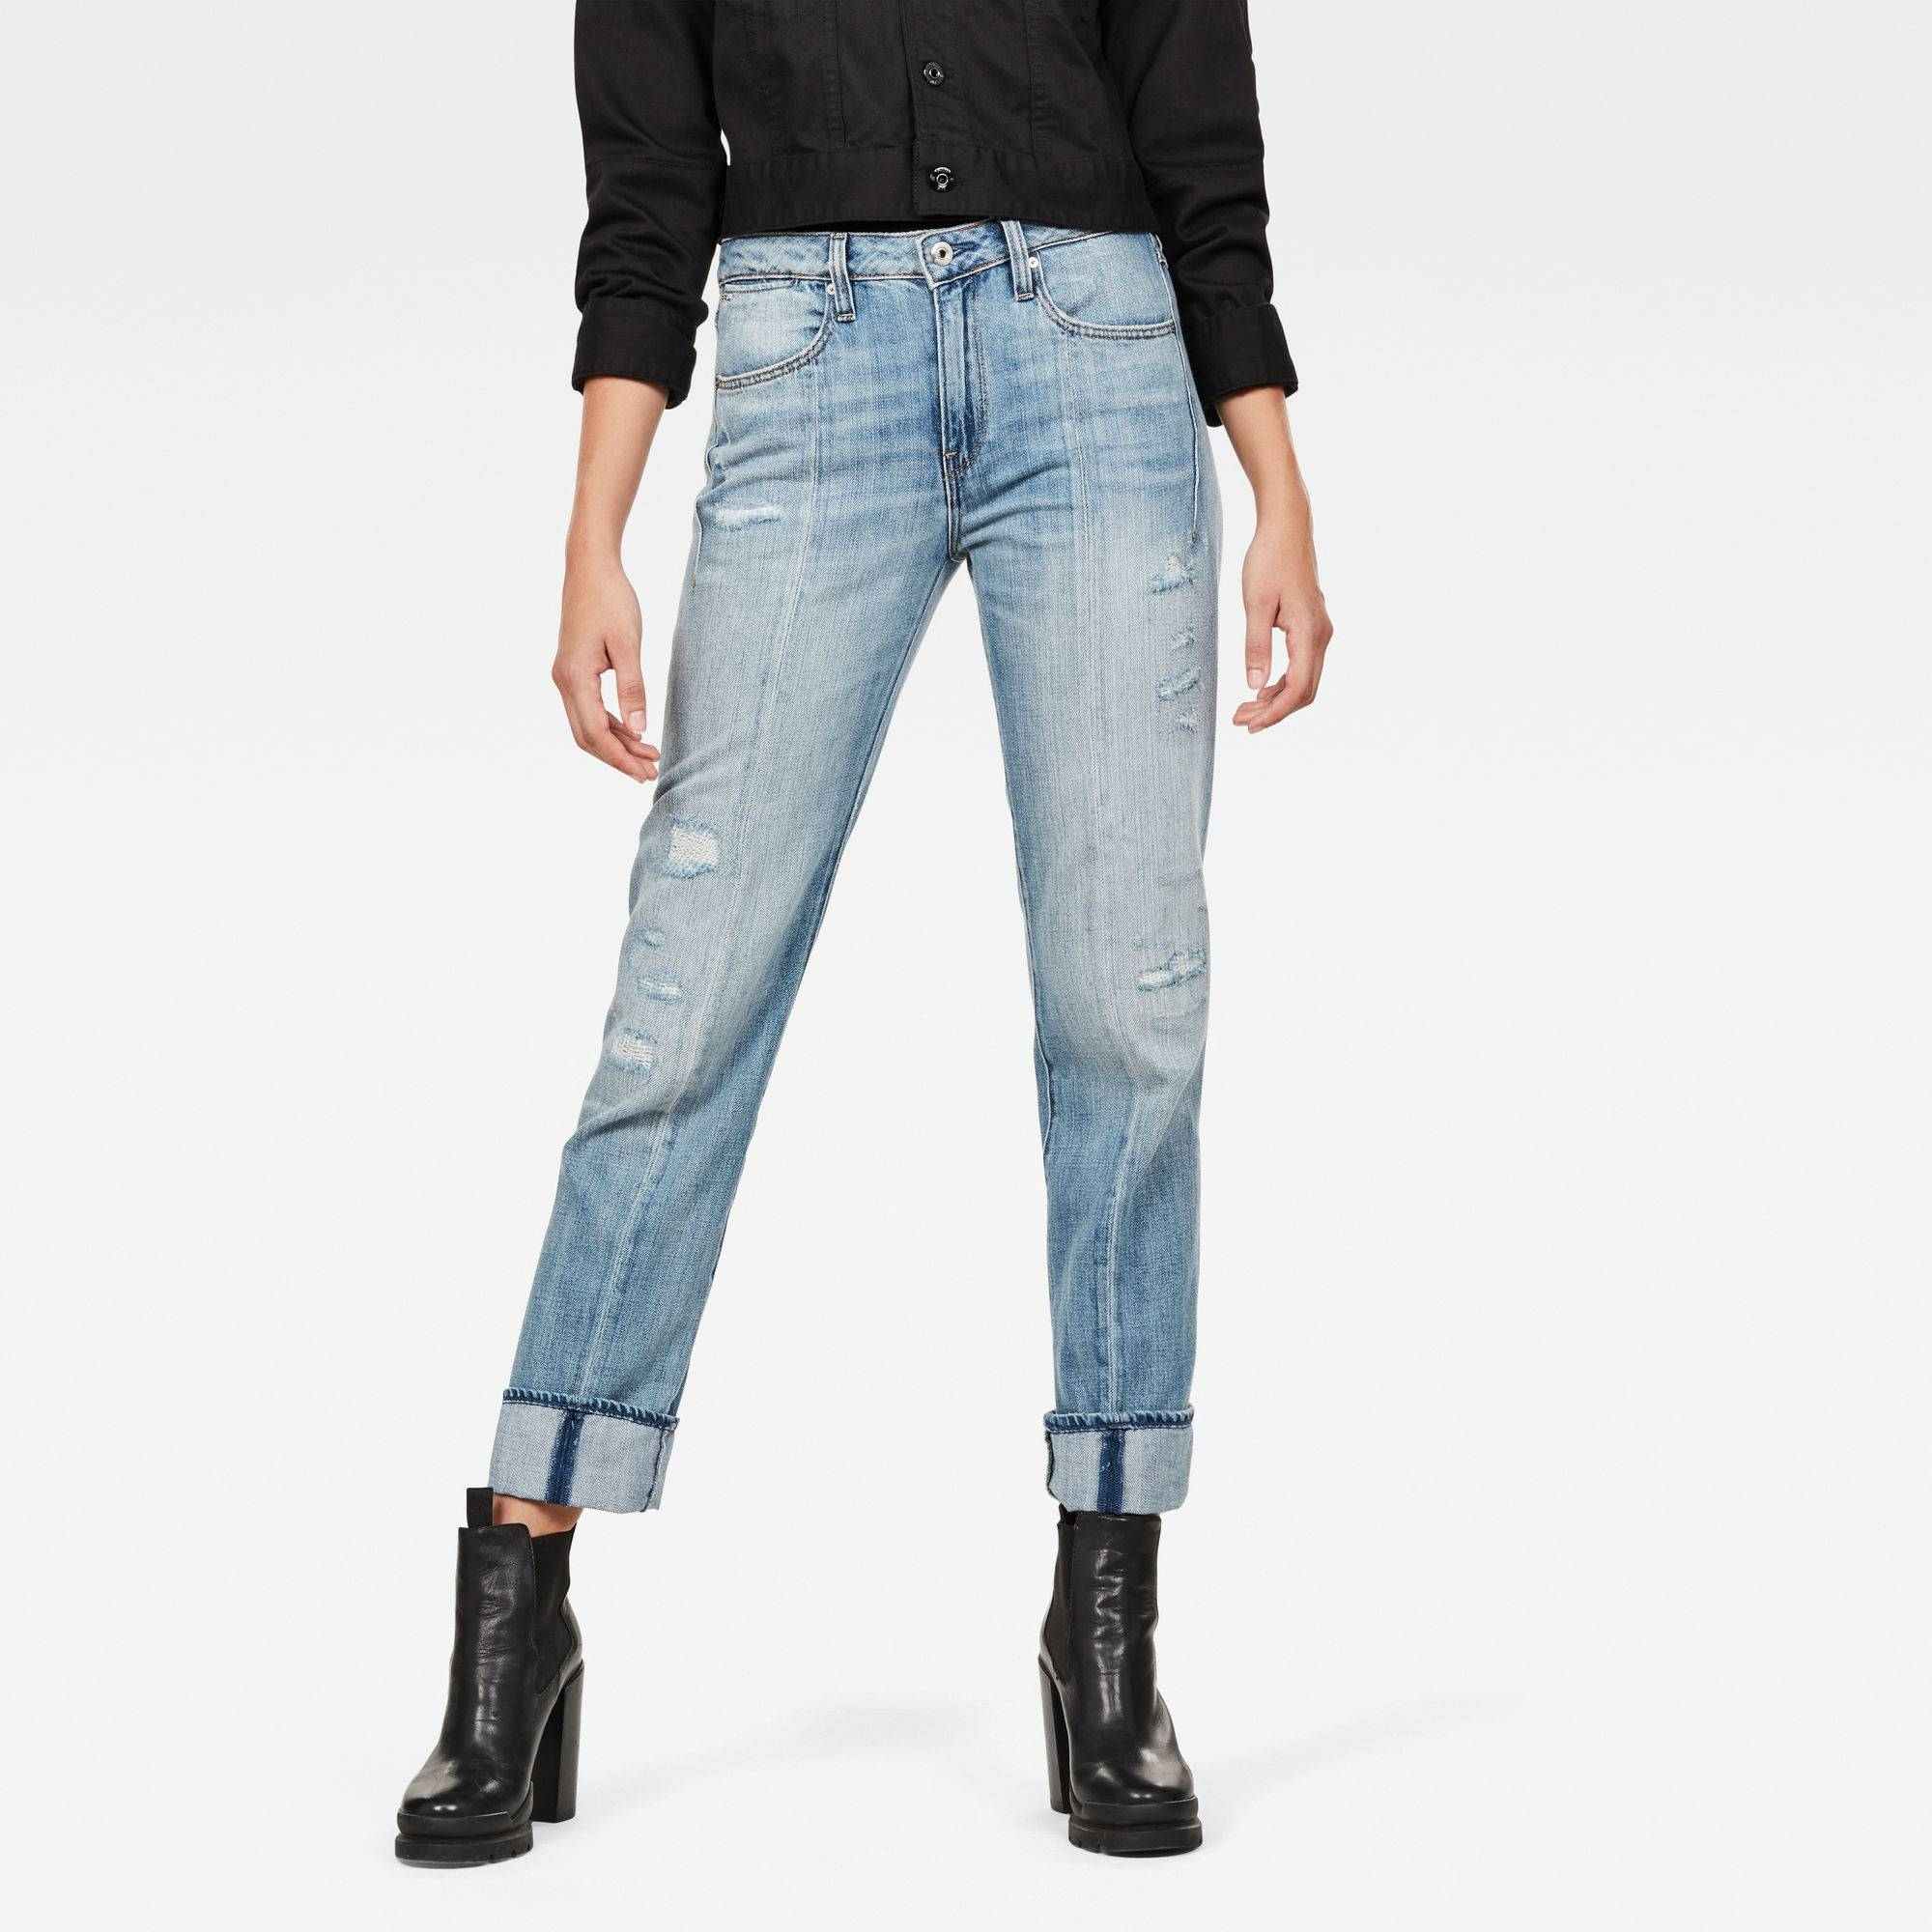 558355cd4cd g star raw powel 3d tapered cuffed - 5, only the best prices and ...